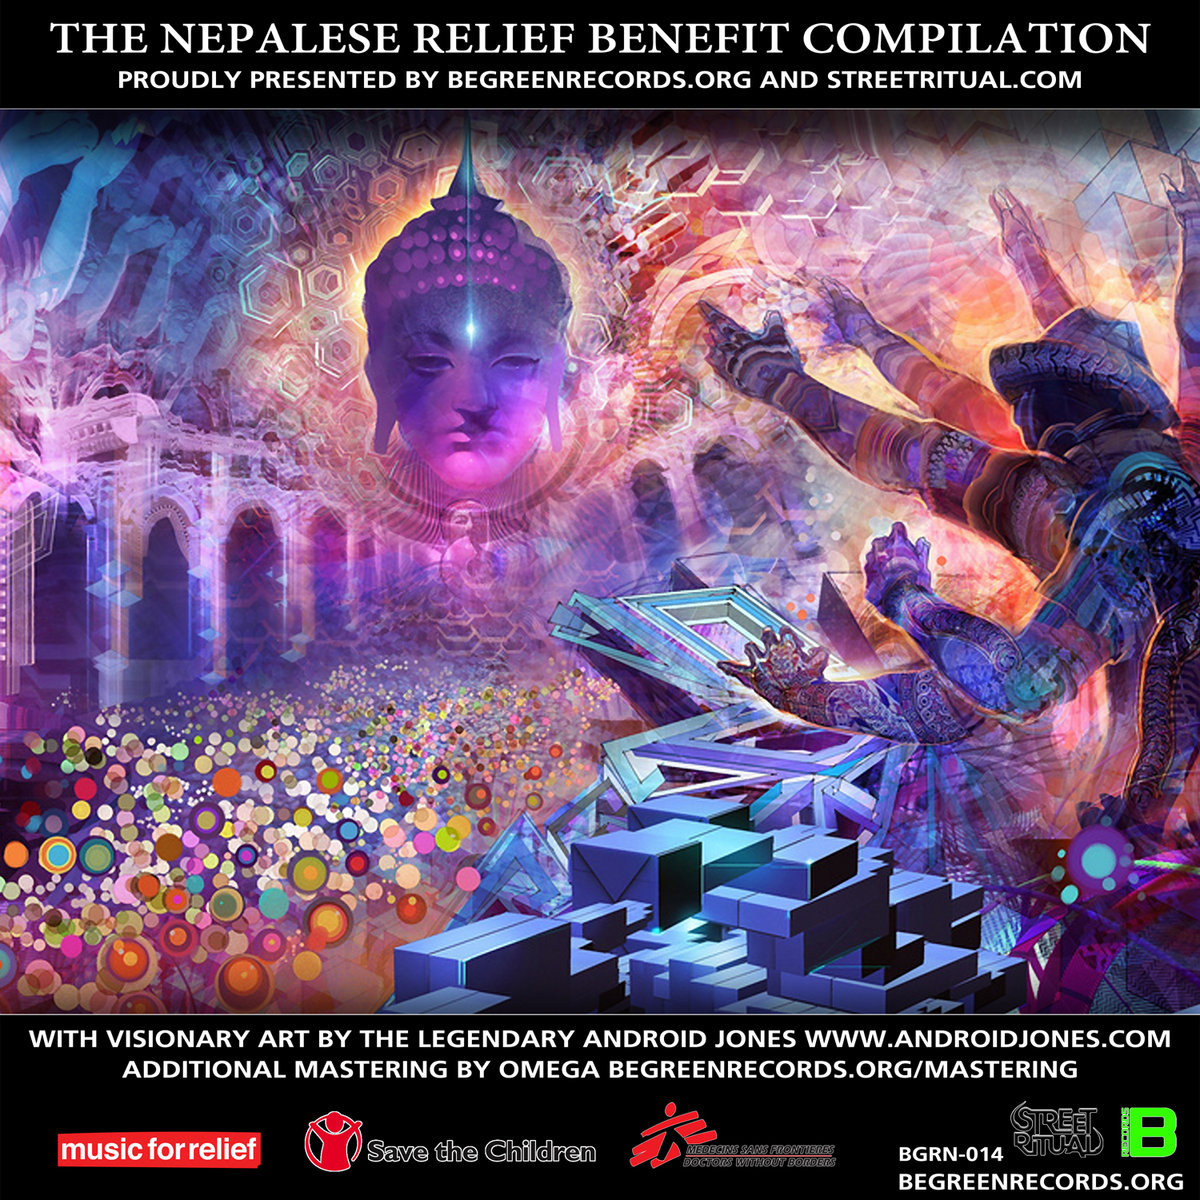 PHloEthik - We Shall @ 'Various Artists - The Nepalese Relief Benefit Compilation' album (bass, electronic)